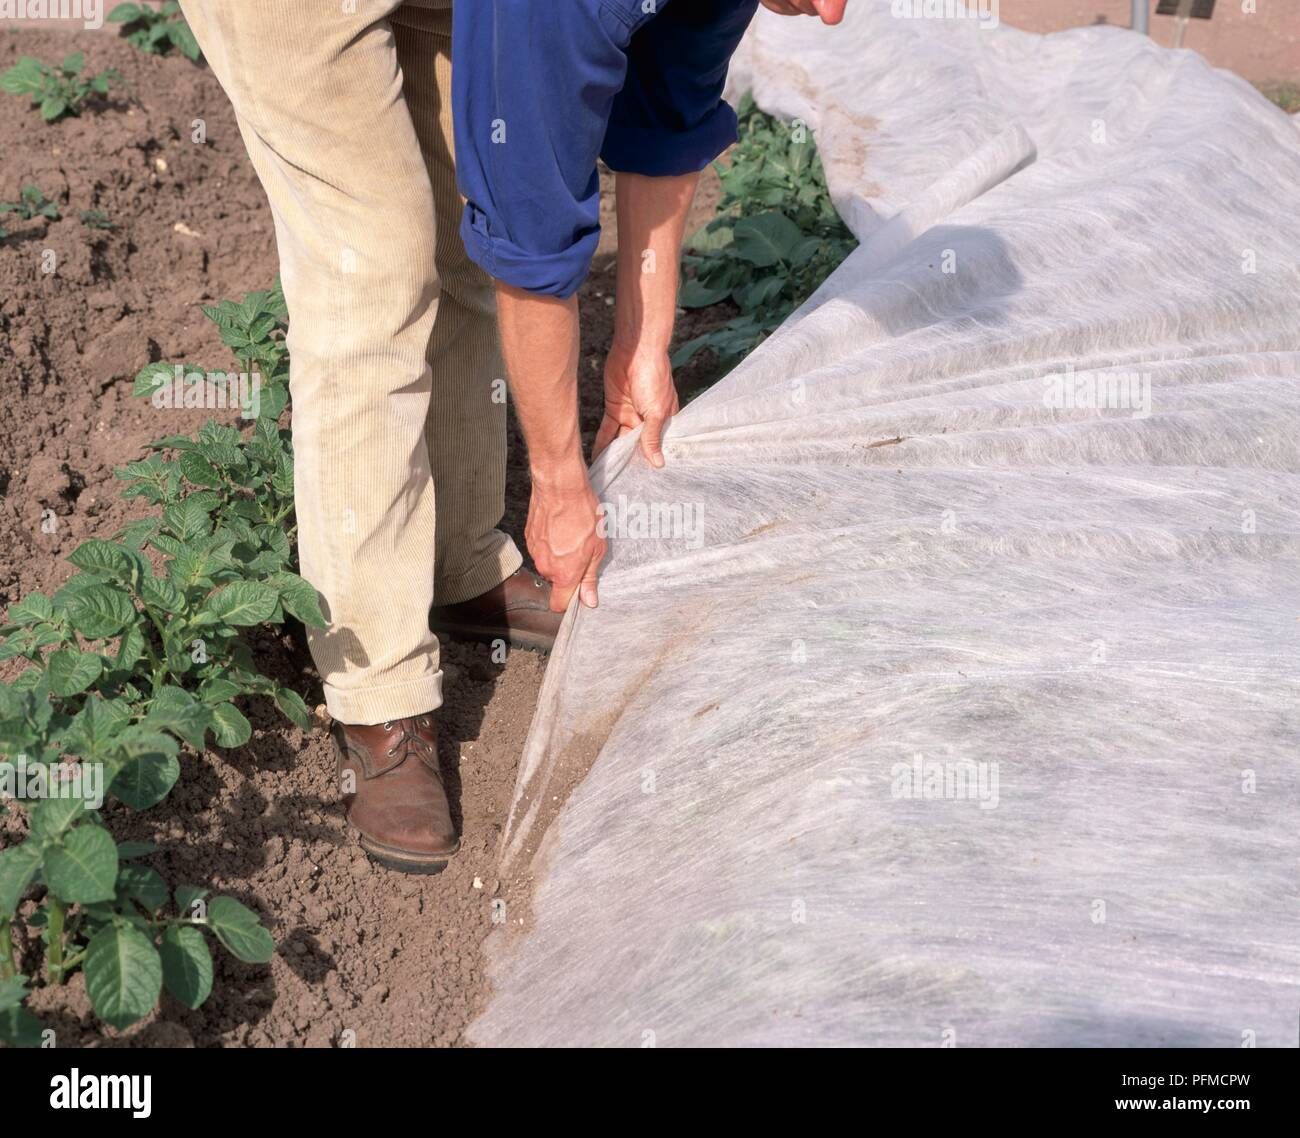 Man covering potato plants with horticultural fleece, close-up - Stock Image